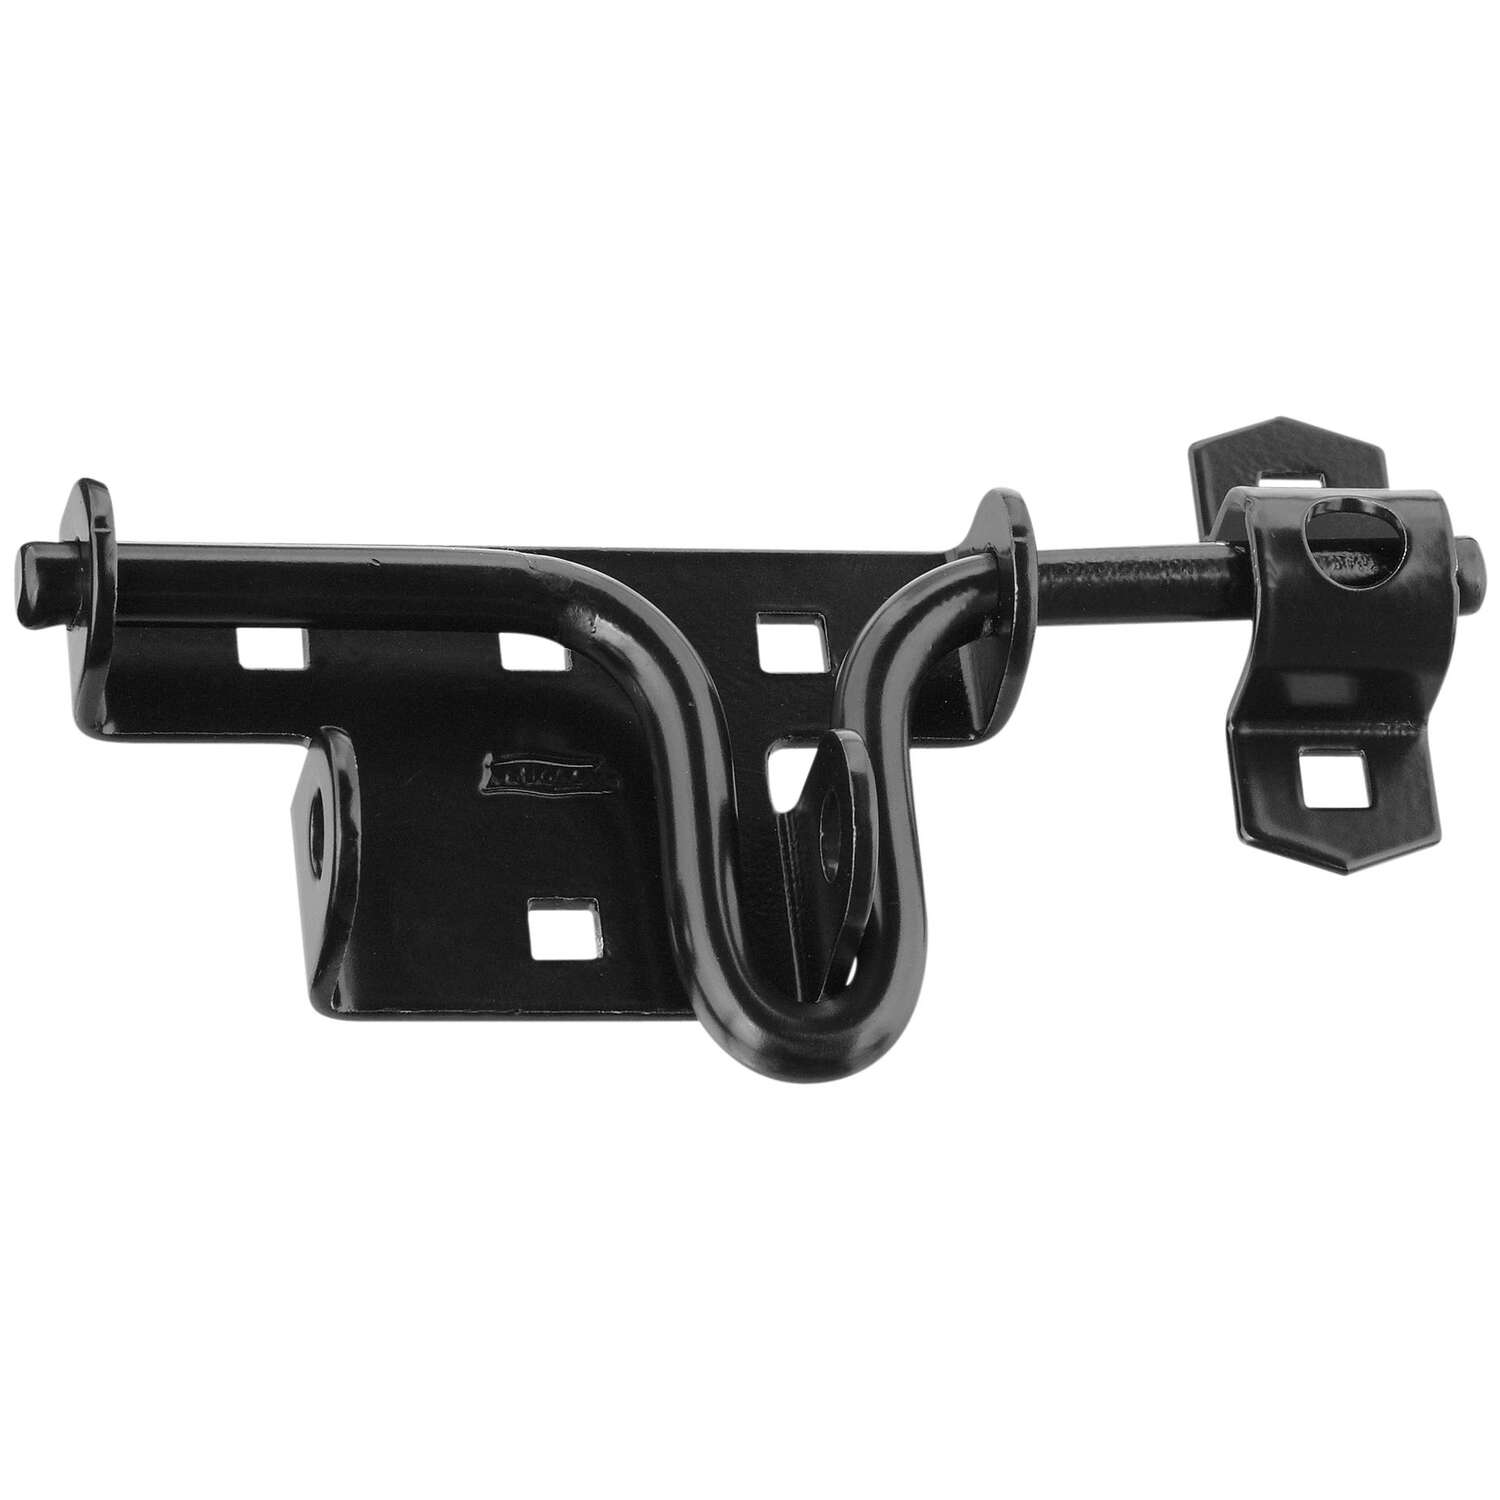 National Hardware 6.19 in. H Black Steel Slide-Action Door/Gate Latch